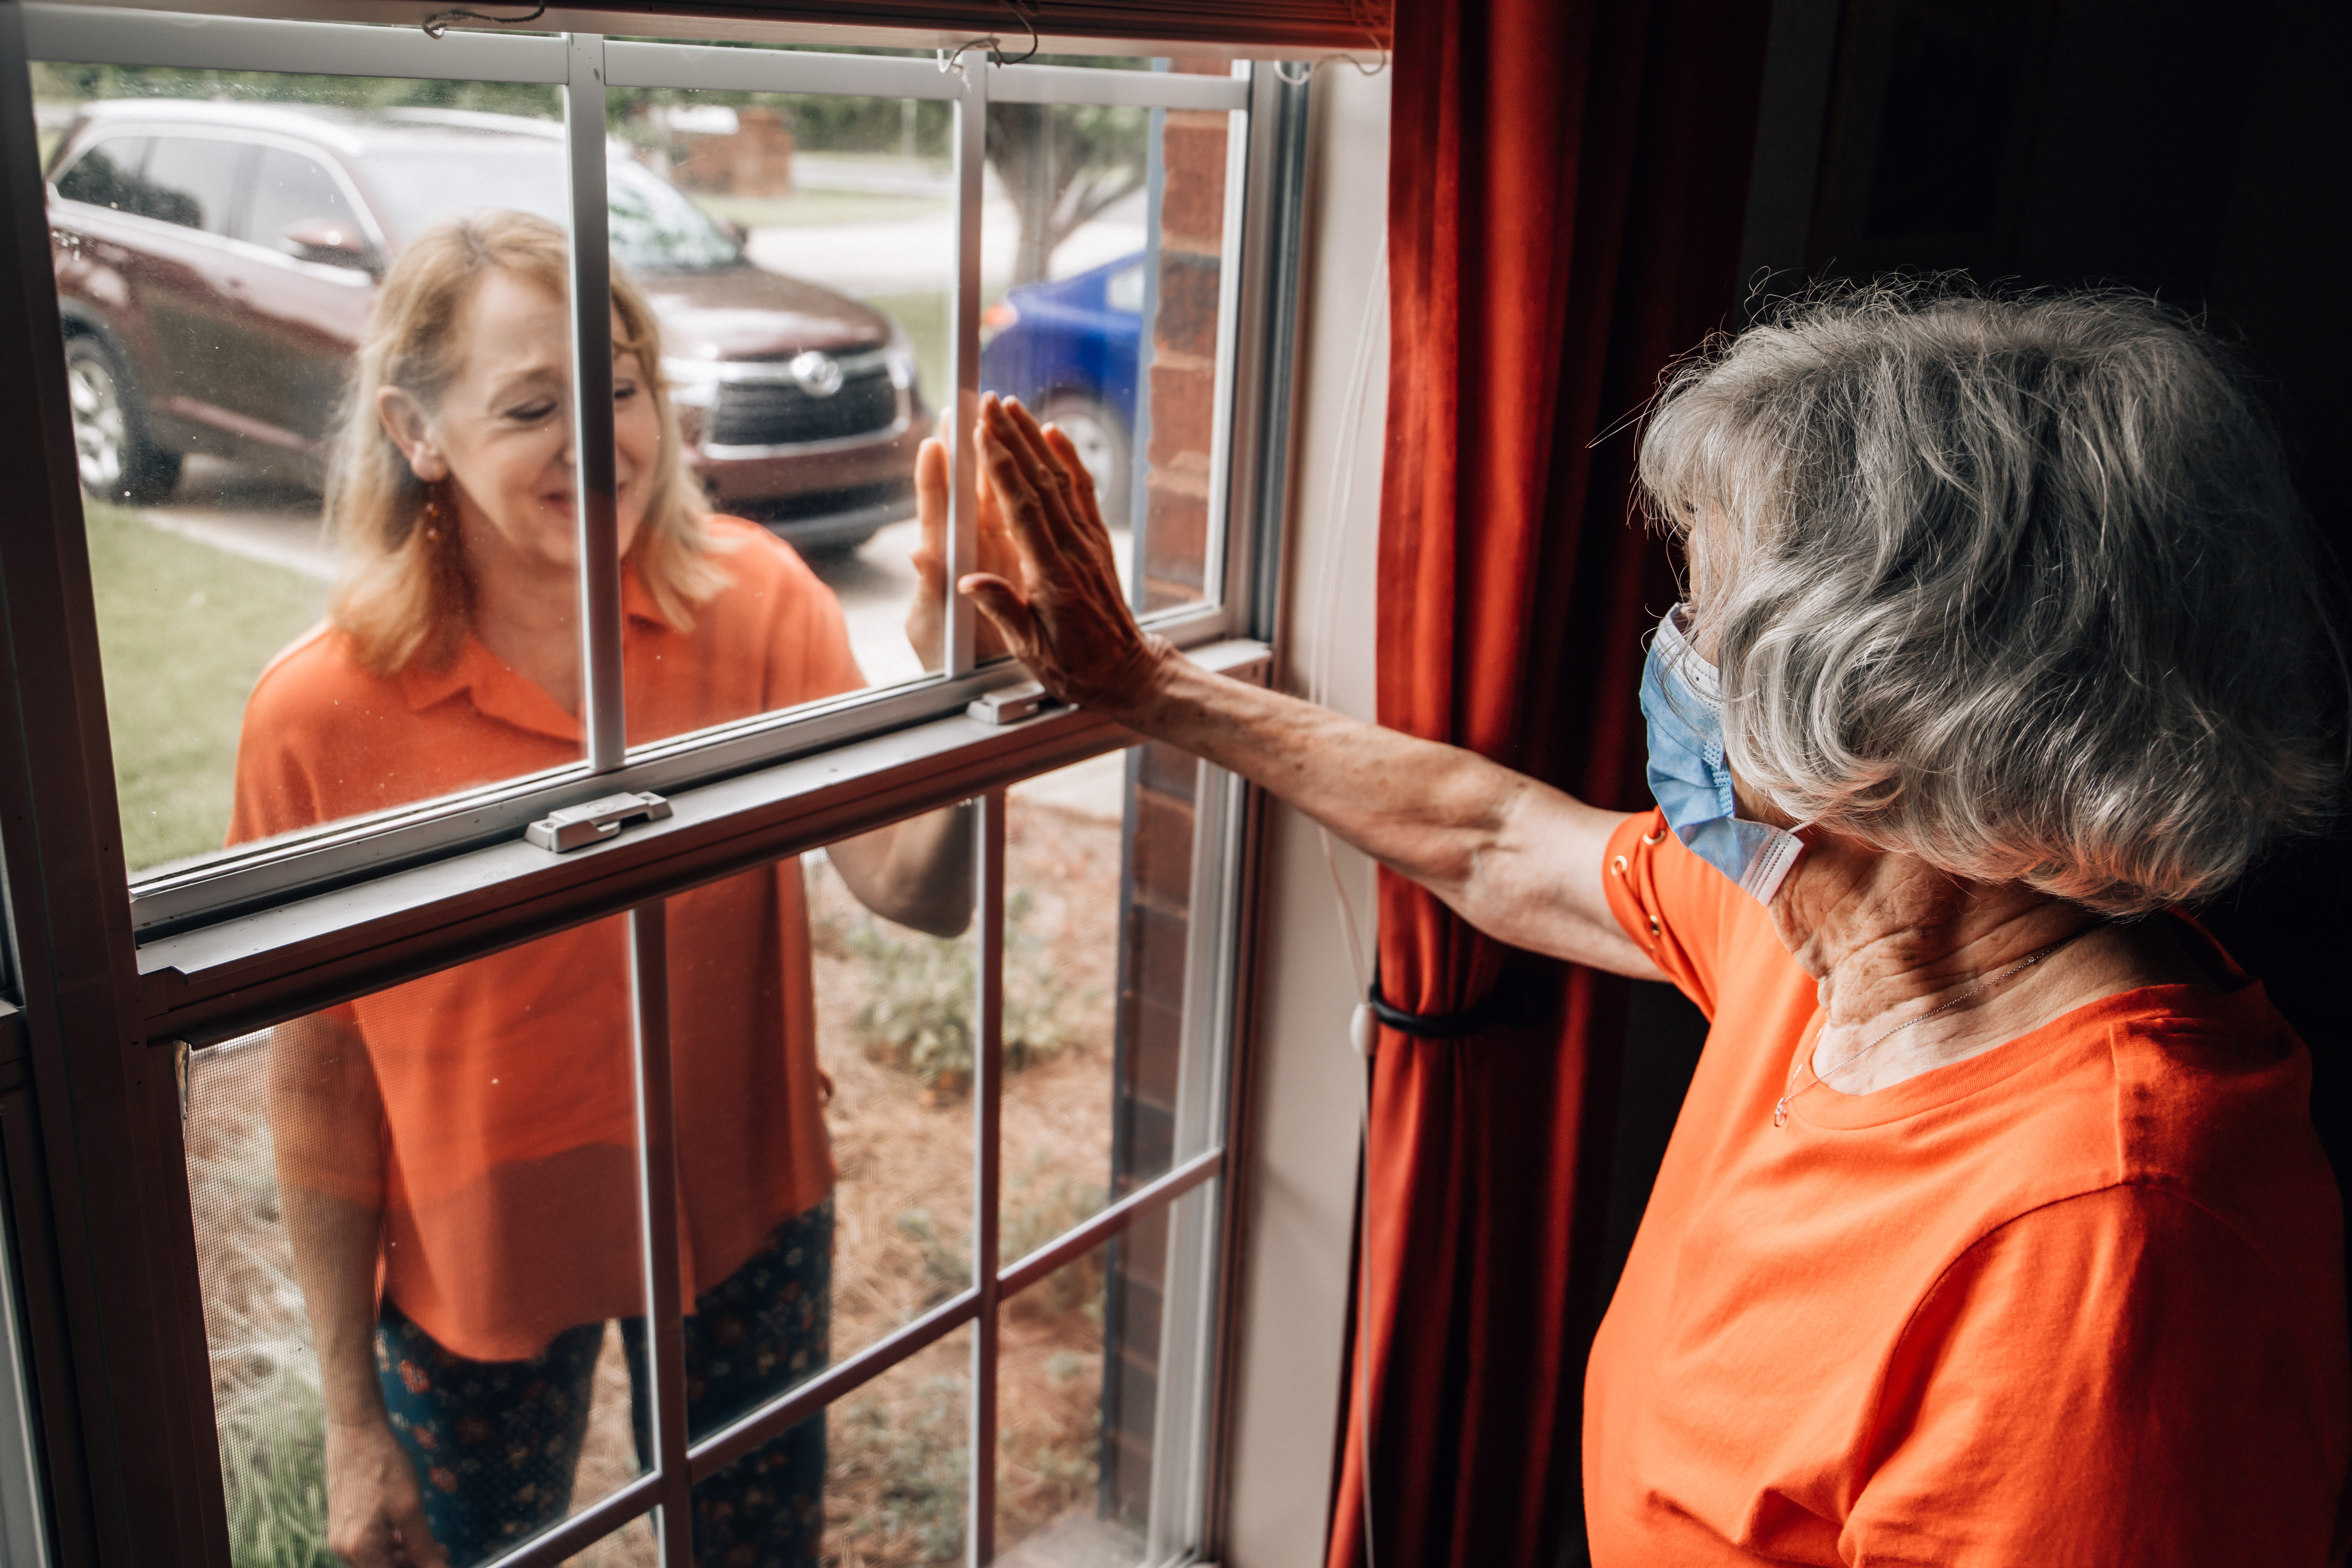 A baby boomer daughter visiting her elderly shut-in mother in her 80's during quarantine from COVID-19 coronavirus through a window as to not catch this contagious disease